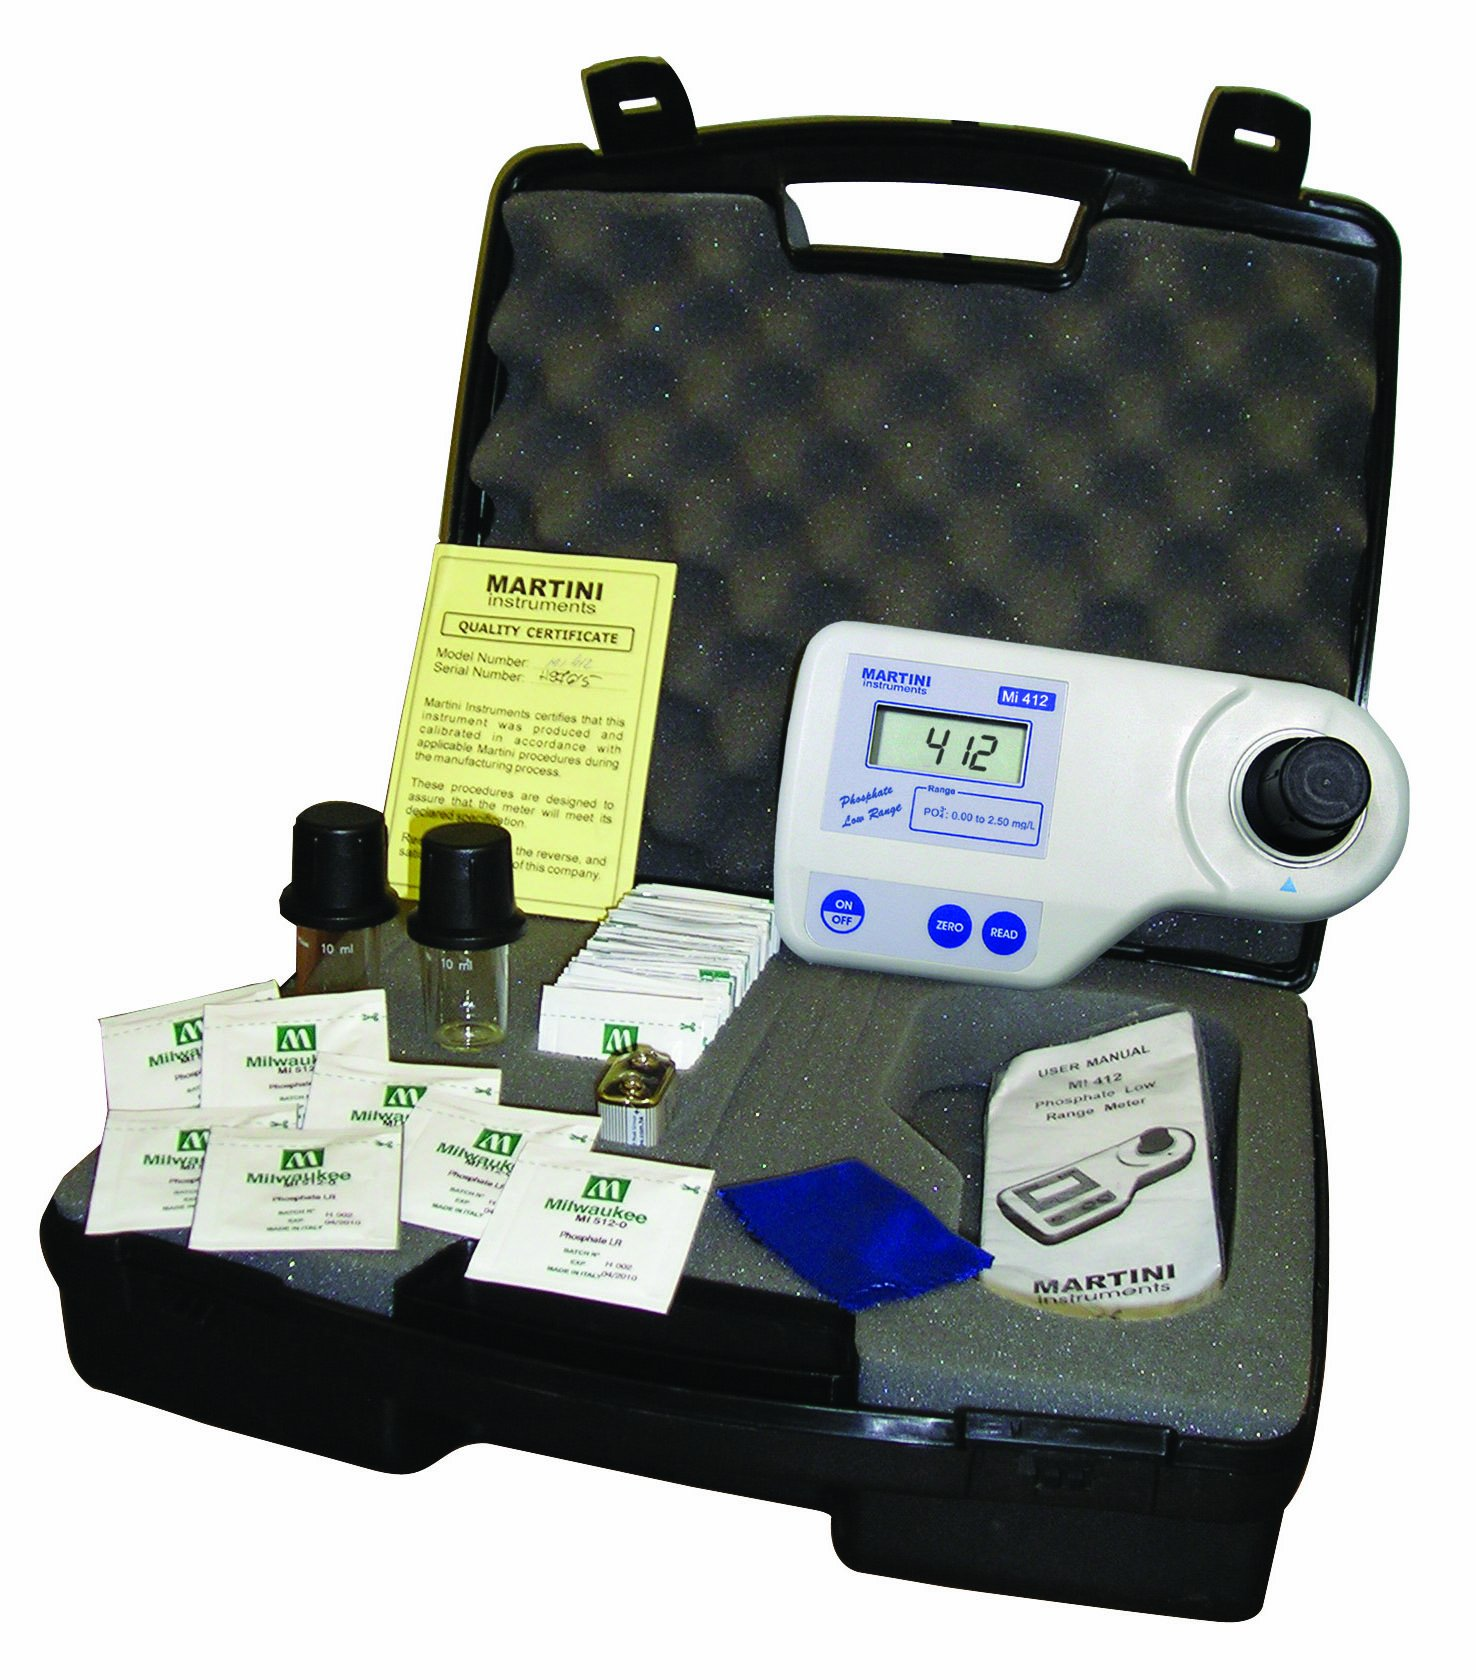 Milwaukee Mi412 Phosphate Low Range Photometer, 192mm Length x 104mm Width x 52mm Height, 0.00 - 2.50 mg/L, 0.01 mg/L Resolution, LCD Display